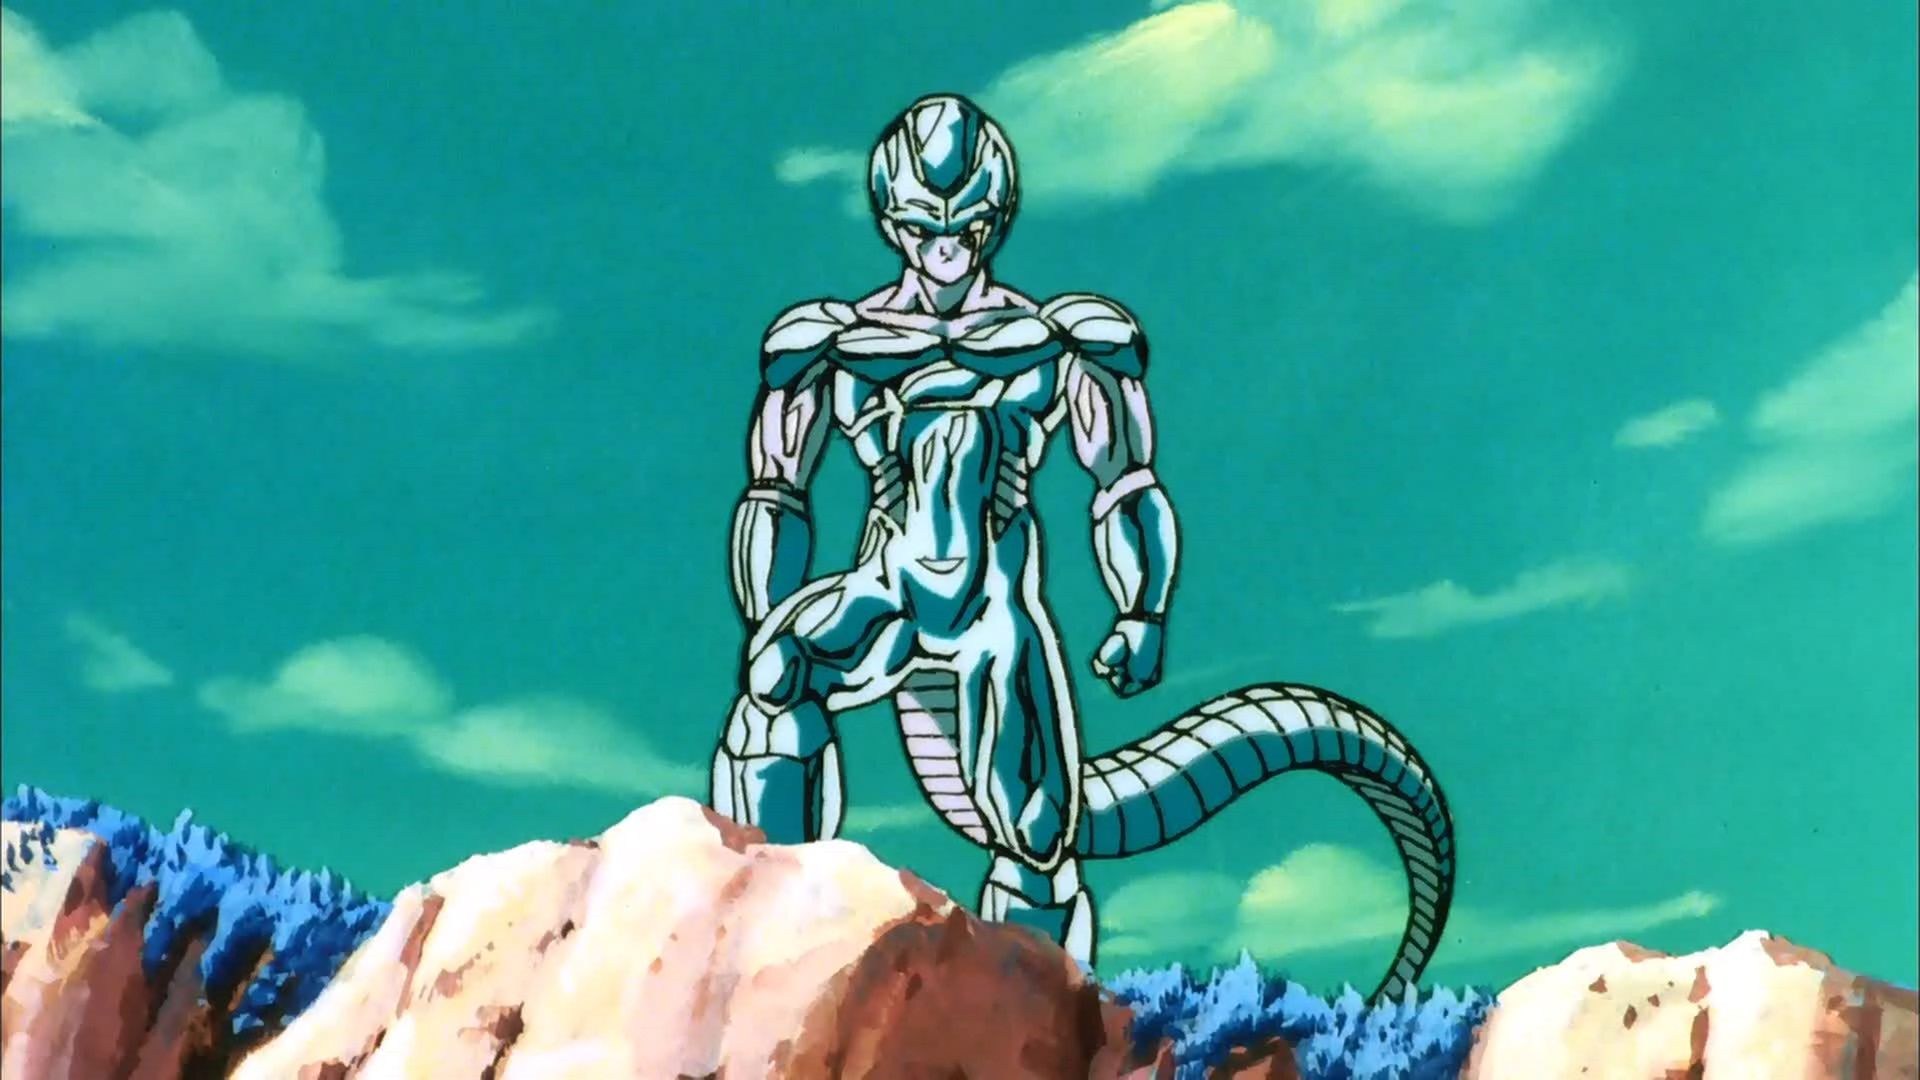 1920x1080 Dragon Ball Z: How Did Cooler Survive Being Blasted Into the Sun ...